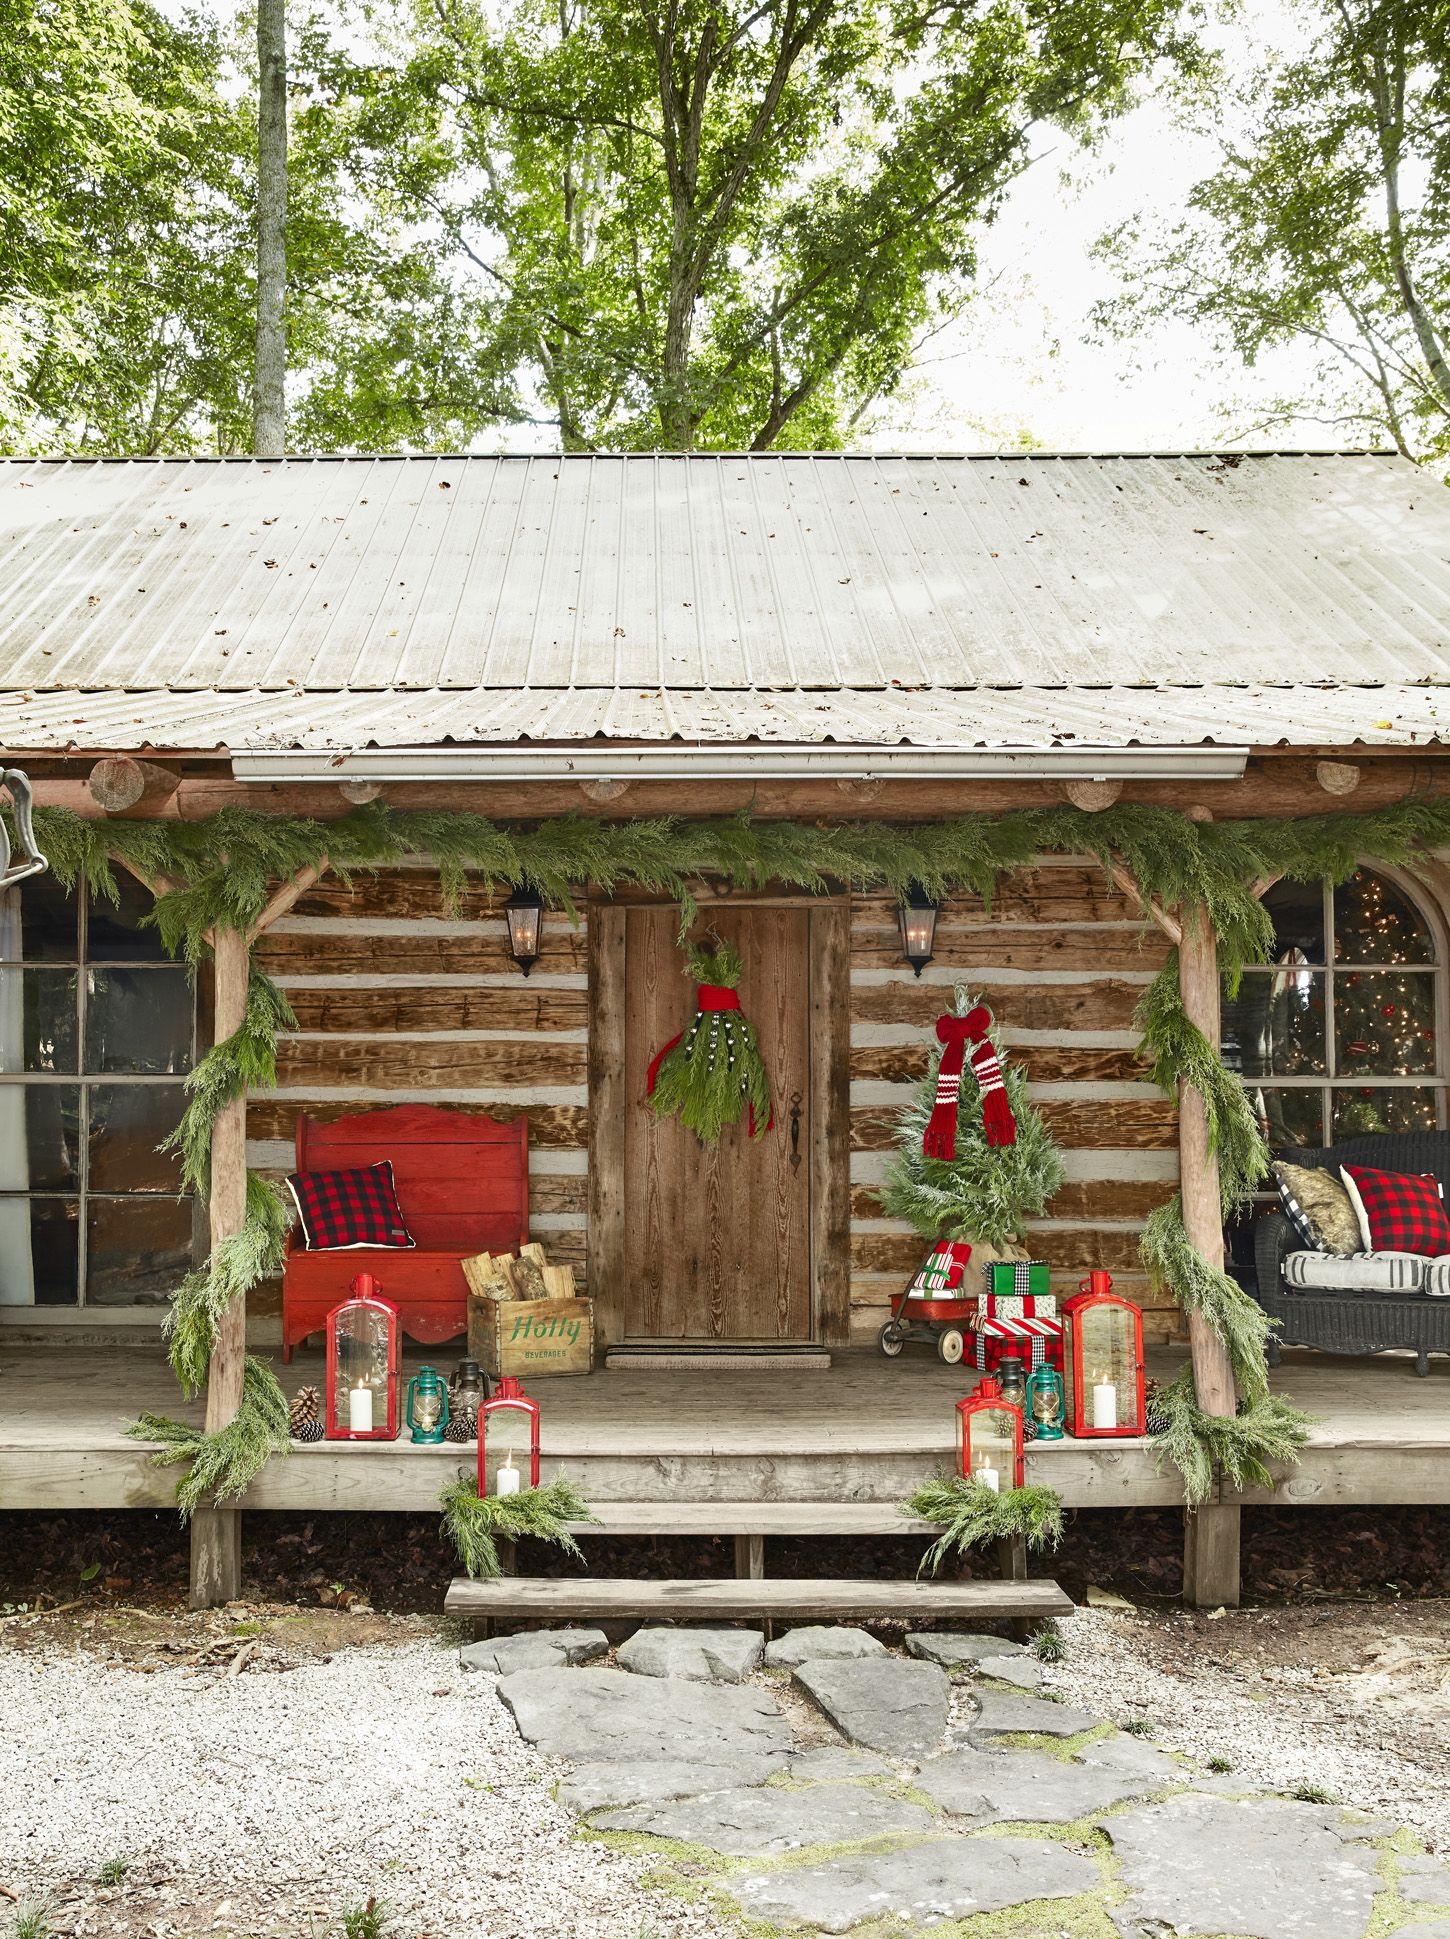 40 Outdoor Christmas Decorations - Ideas for Outside Christmas Porch Decor